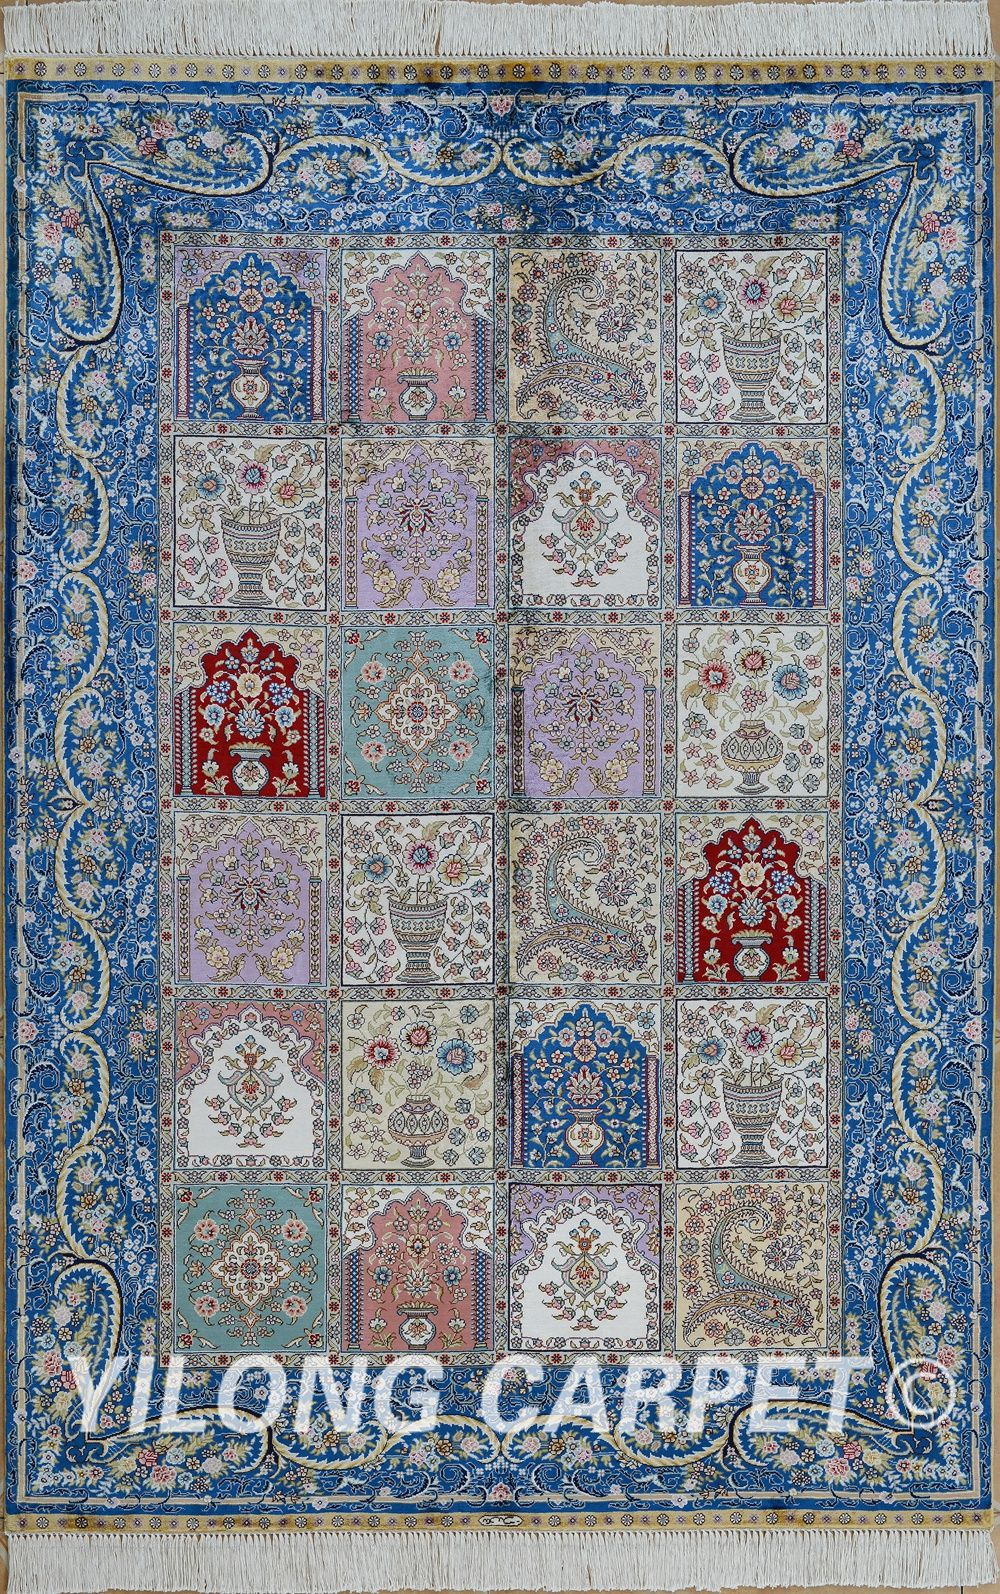 Rug Materials Silk Style Traditional Dyeing Vegetable Technology Hand Knotted Size 2x3 14x20 Fit For Bedroom Living Room Dining Area